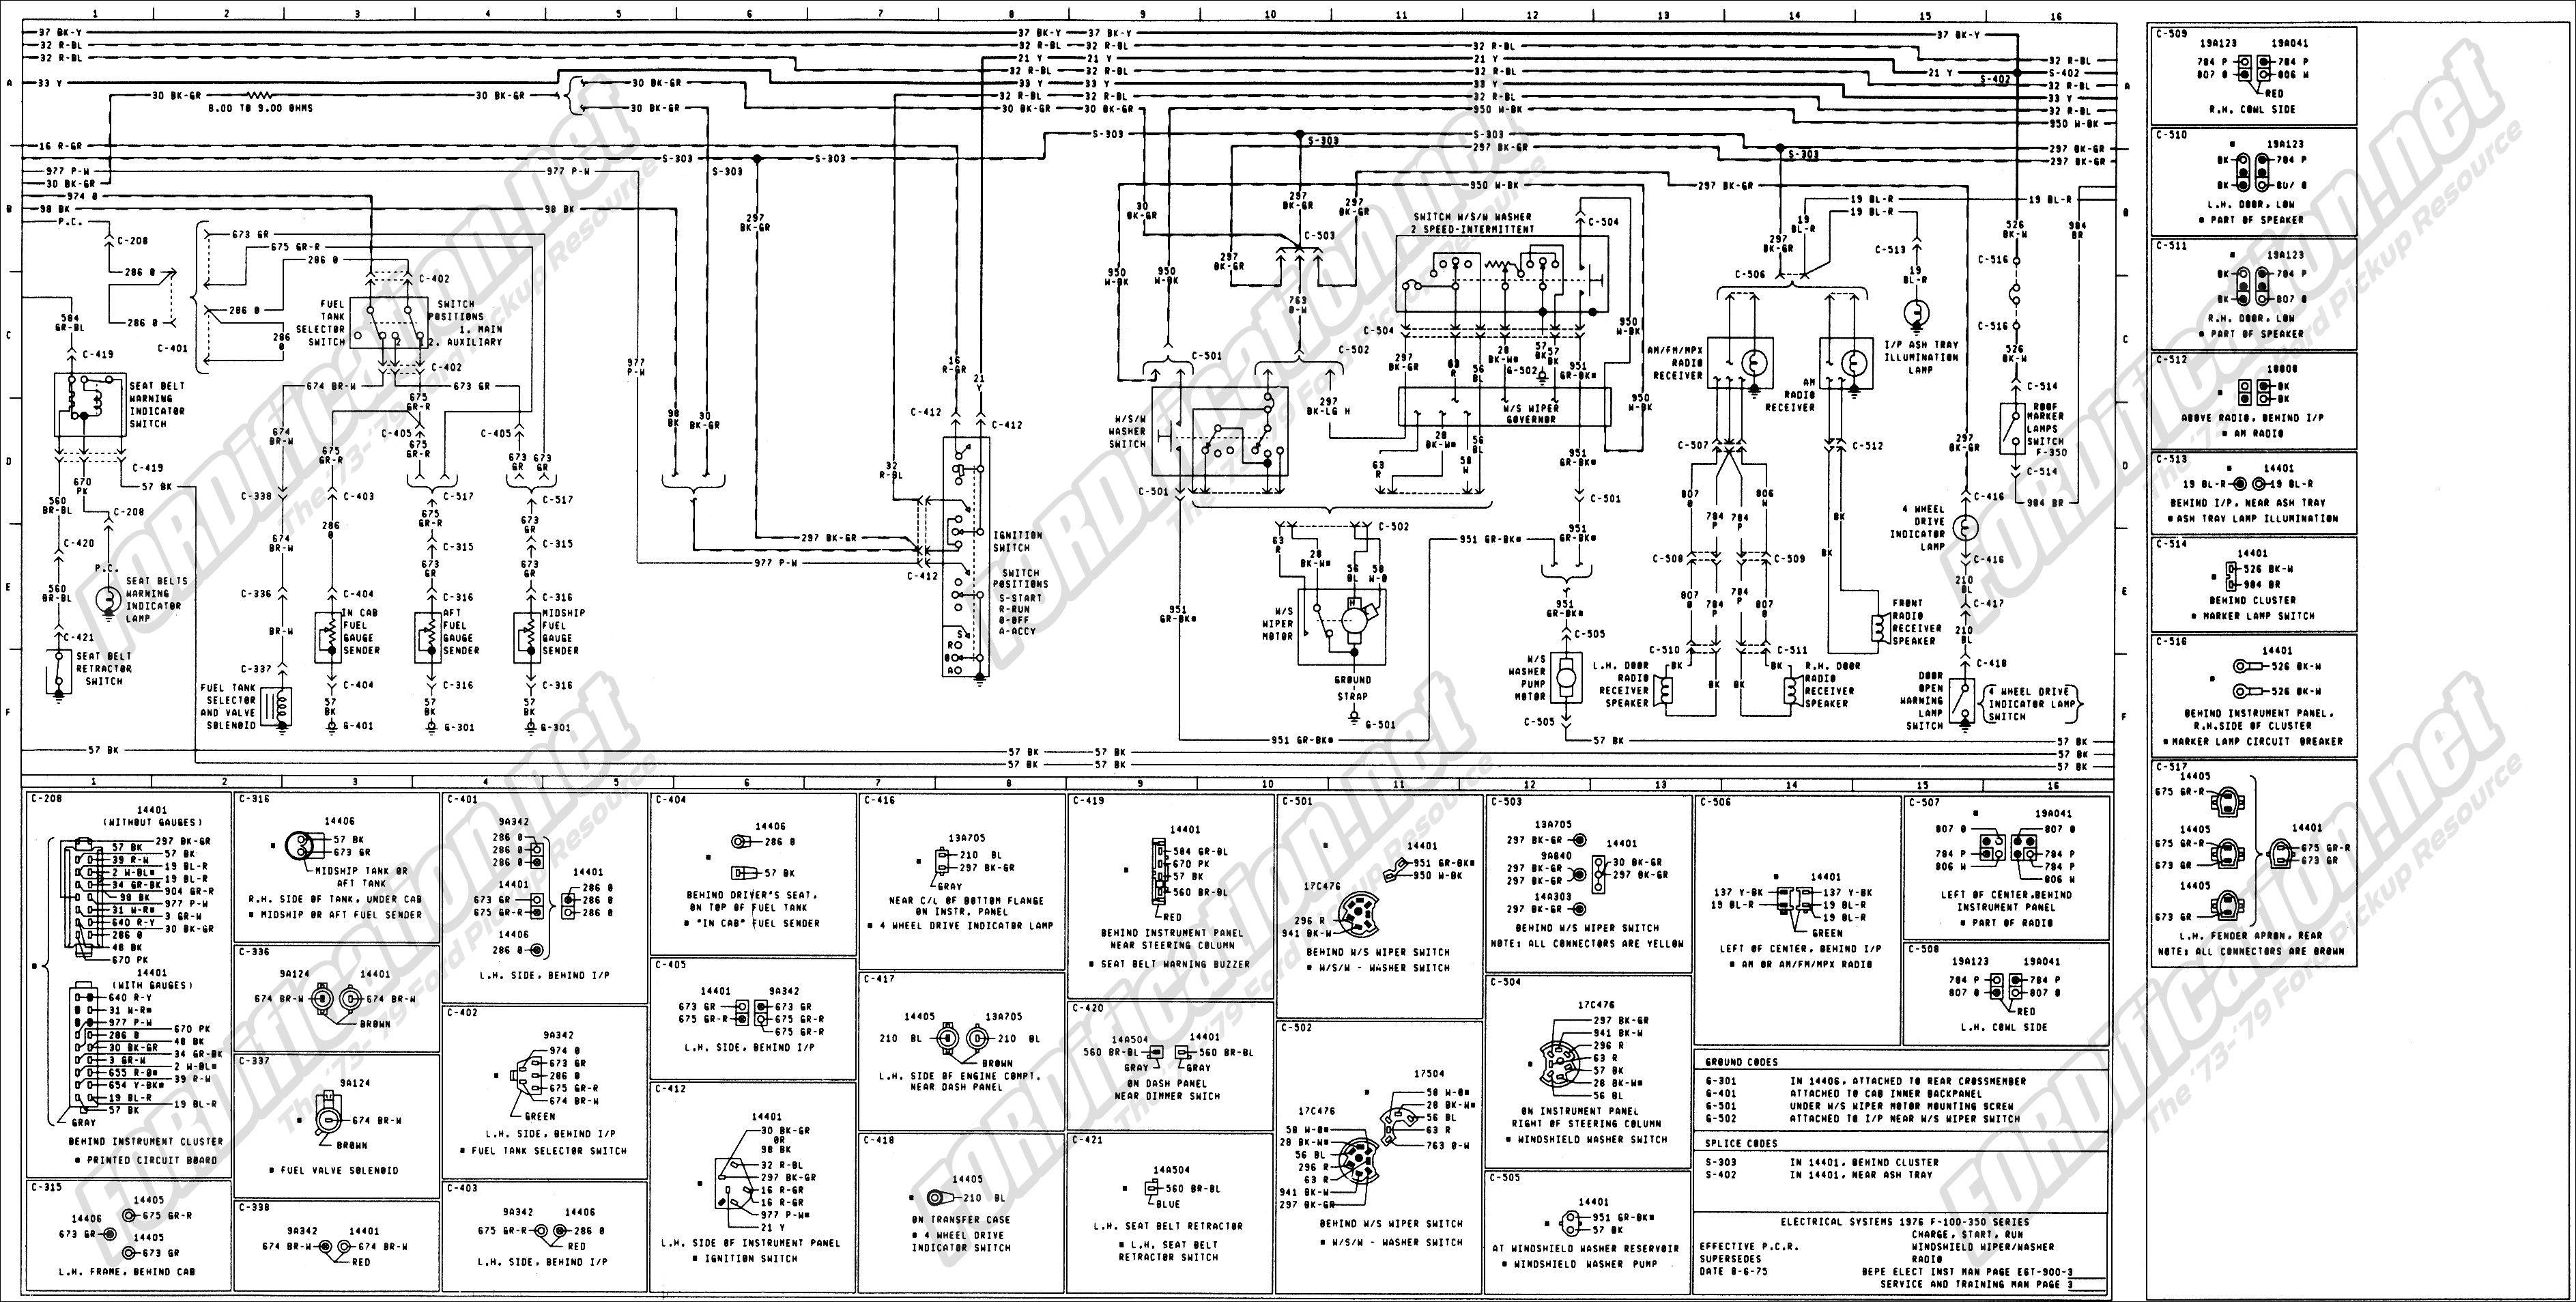 2003 ford f150 ac wiring diagram wiring diagram and schematic design vehicle sds 2003 ford f150 wiring diagram solenoid throttle